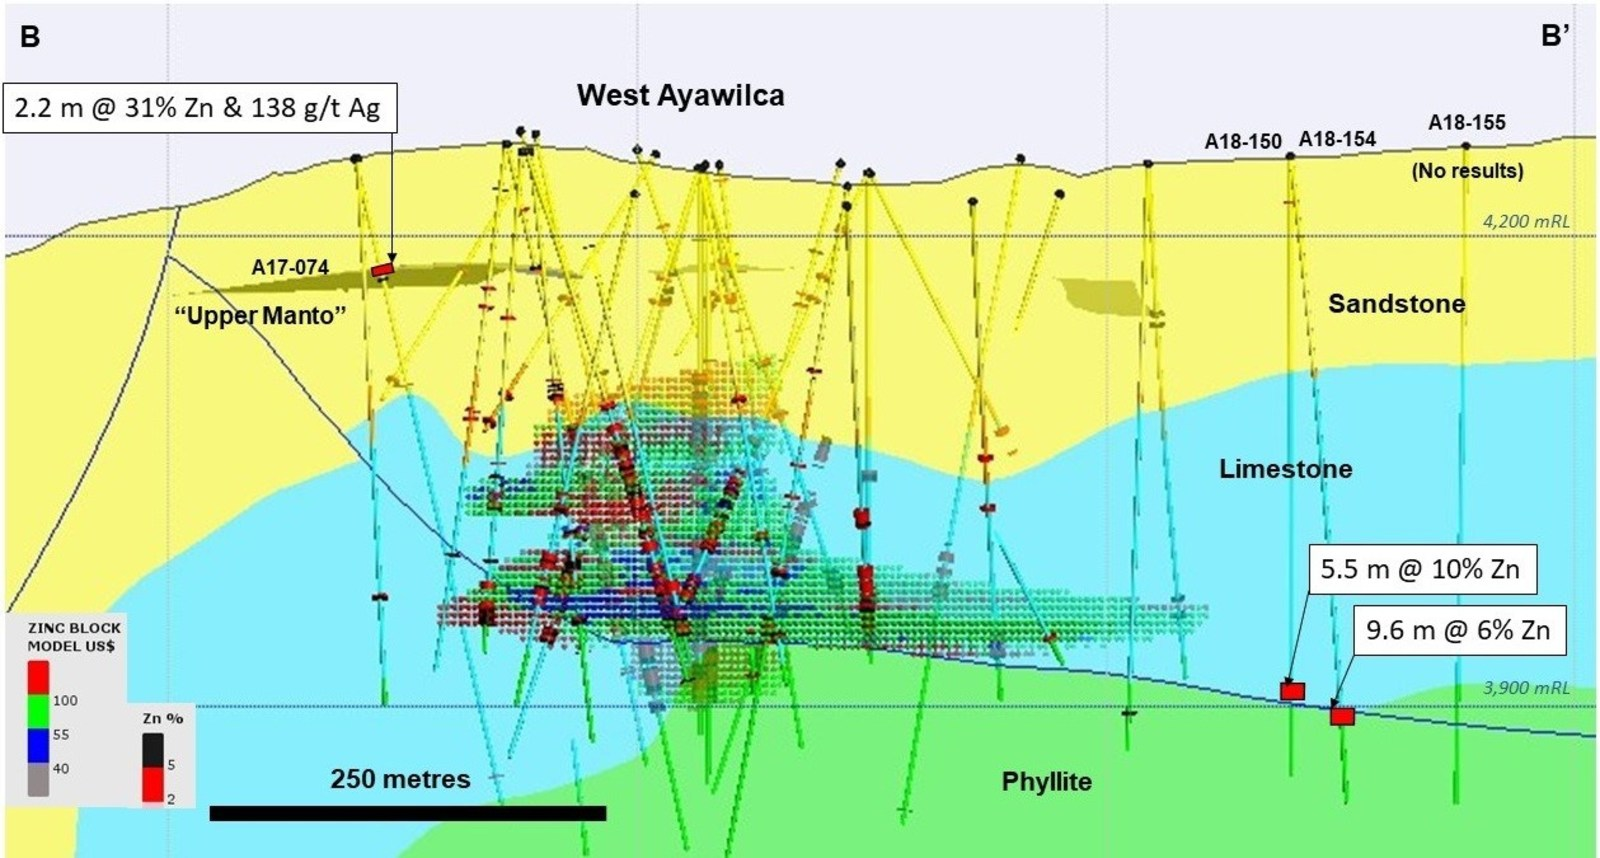 Figure 3.  Long section of West Ayawilca B-B' viewing to the northwest - The Upper Manto within the Goyllar sandstone formation is shown as a 3D projection. Recent infill drill holes at West Ayawilca are not labelled. Existing inferred zinc resources are shown by the red & green hatch